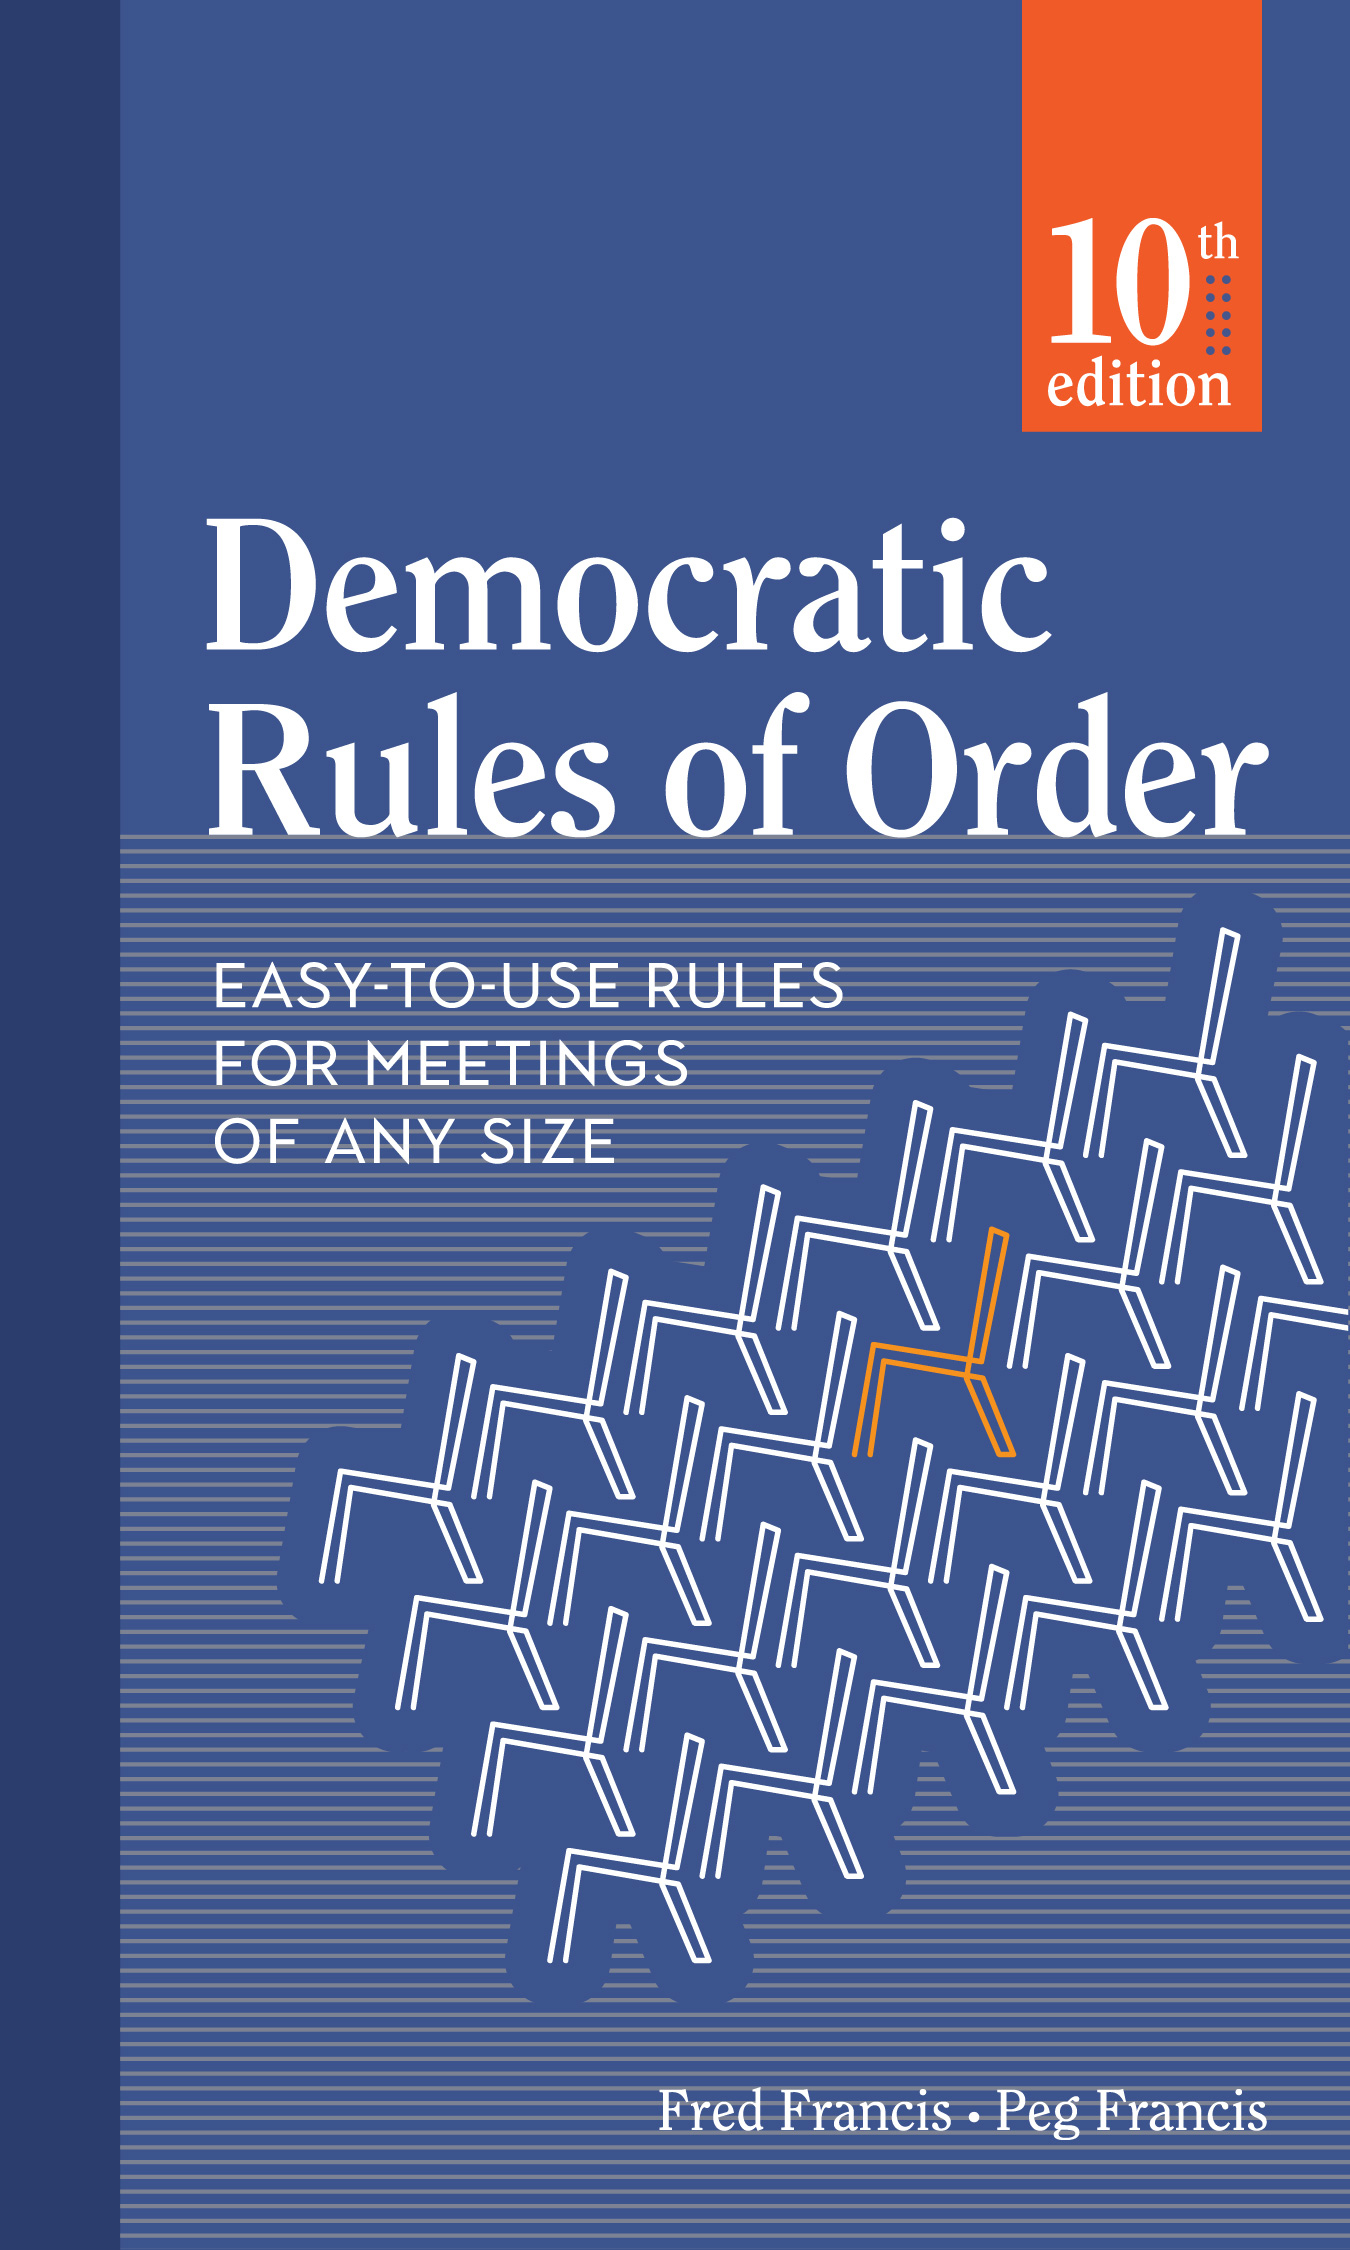 582px version of Democratic-Rules-of-Order_cover.jpg